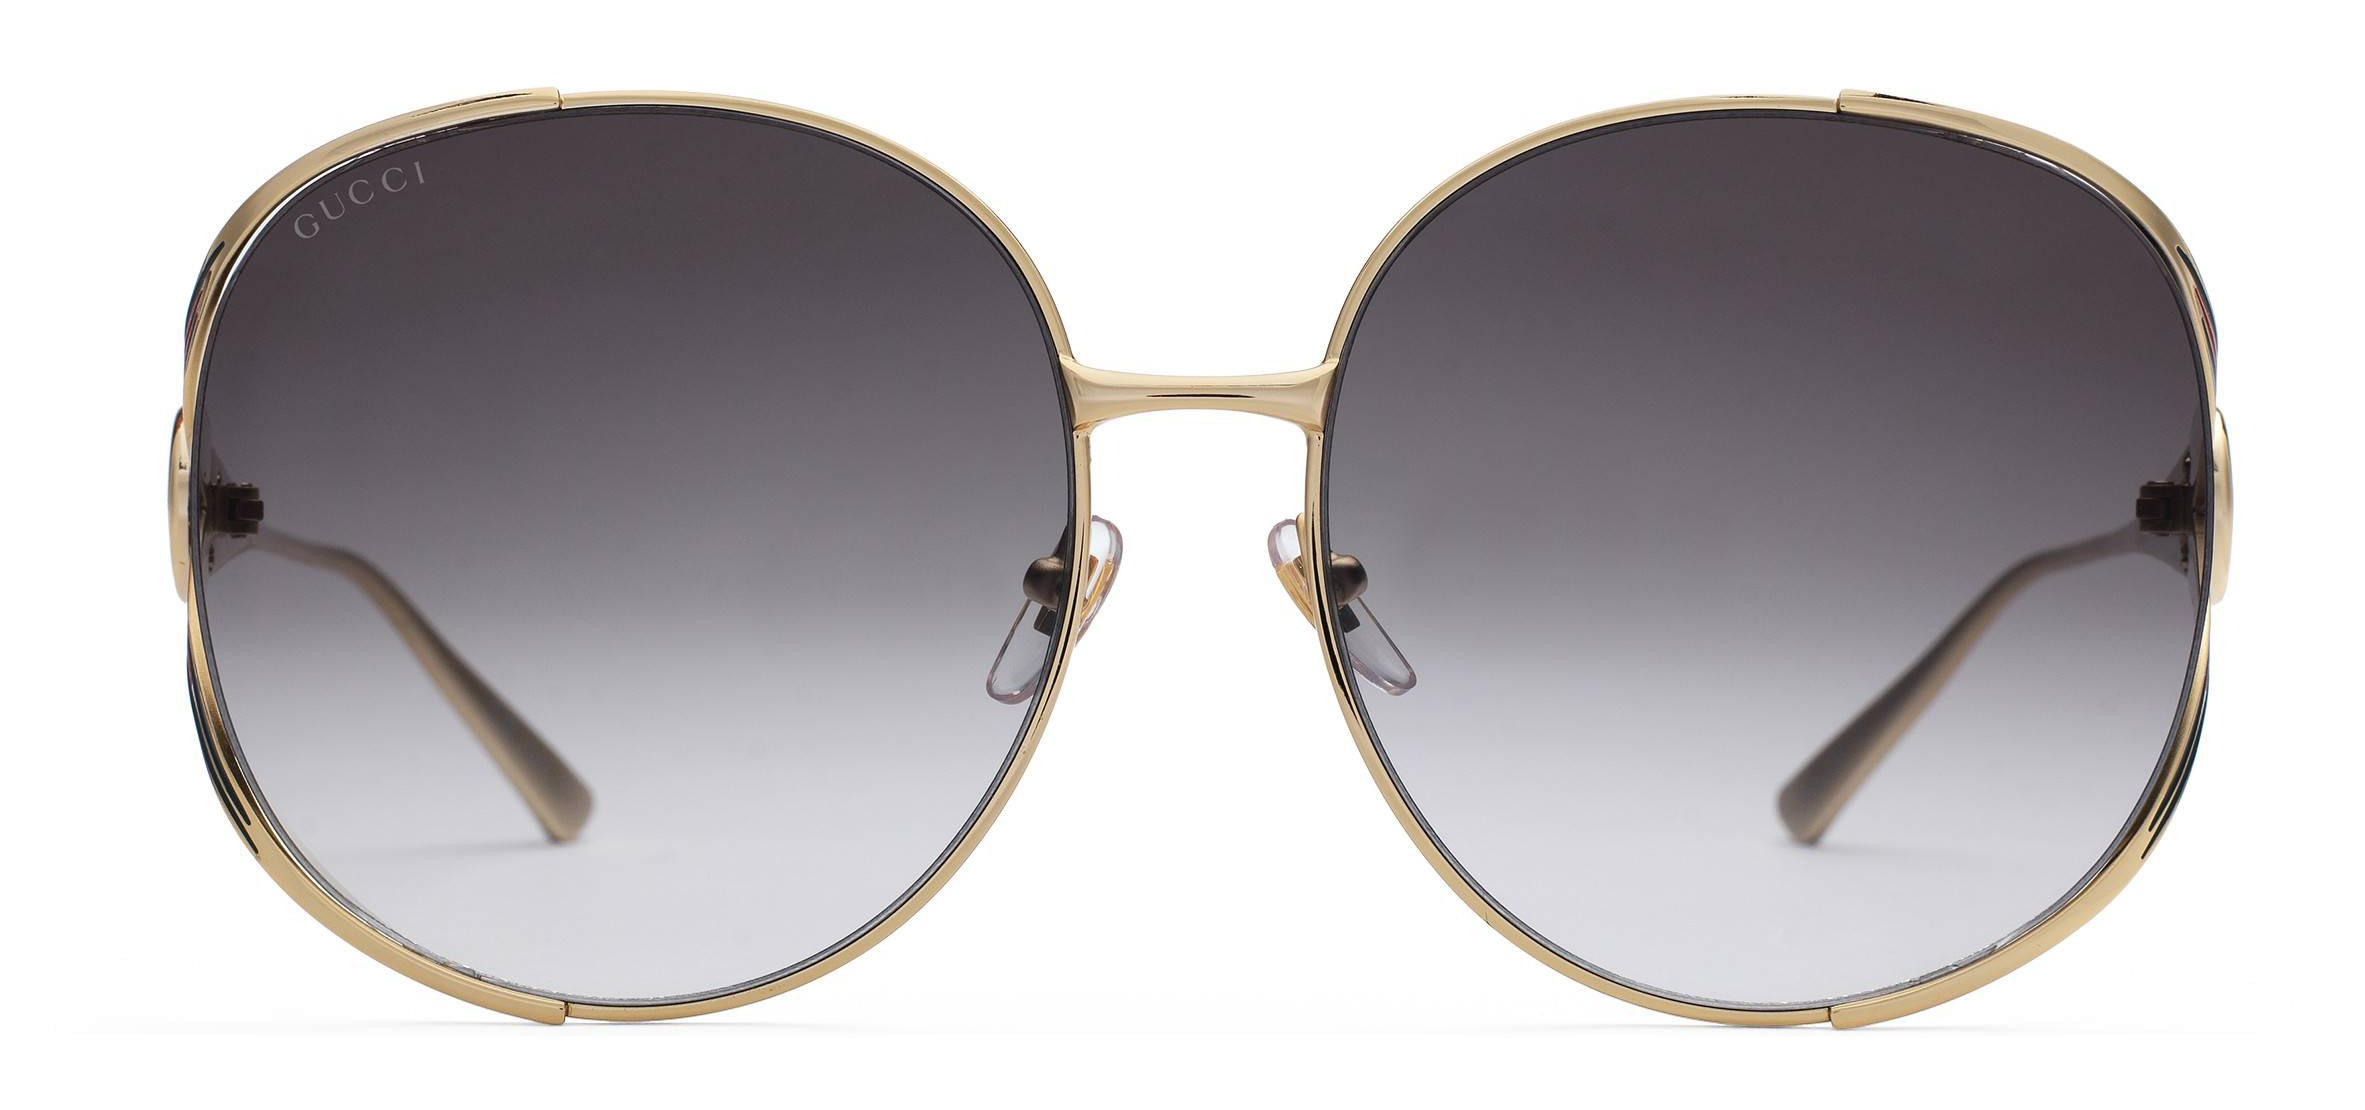 5c8cc763e9d0 Gucci - Round Metal Sunglasses - Gold with Enamel Crotch Detail and Web  Detail - Gucci Eyewear